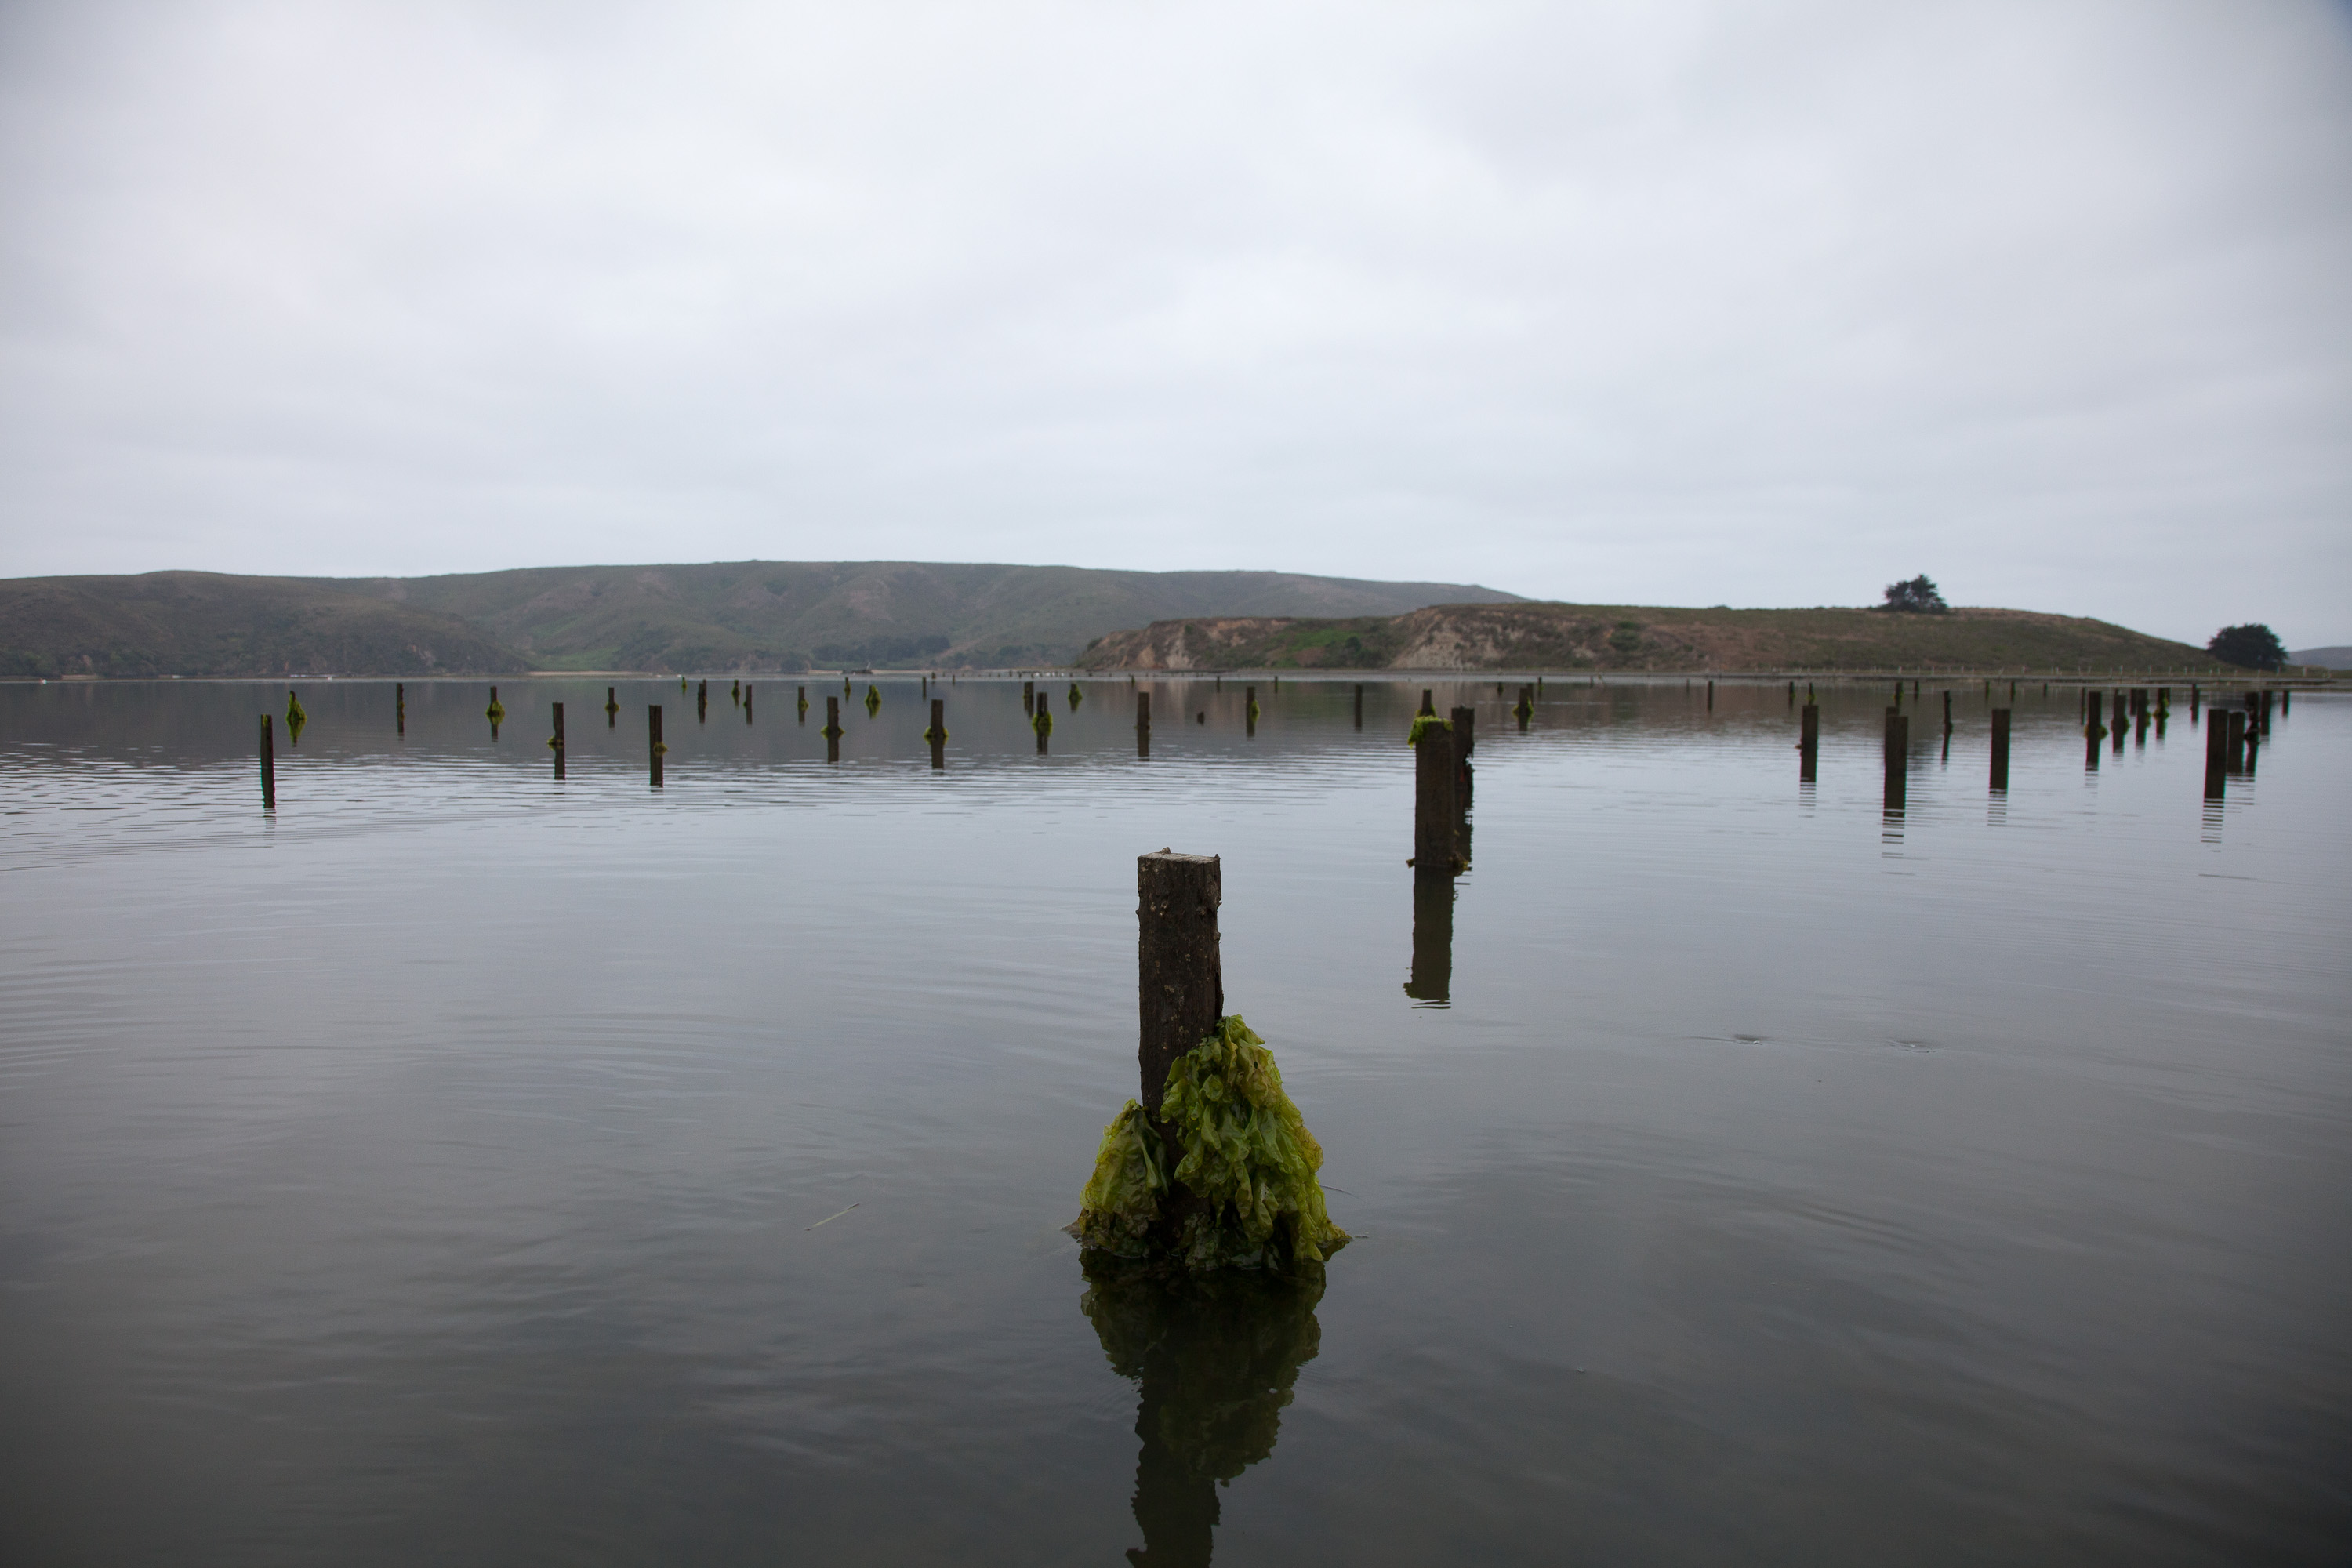 150 chemically treated posts from many decades ago near Tom's Point awaiting removal